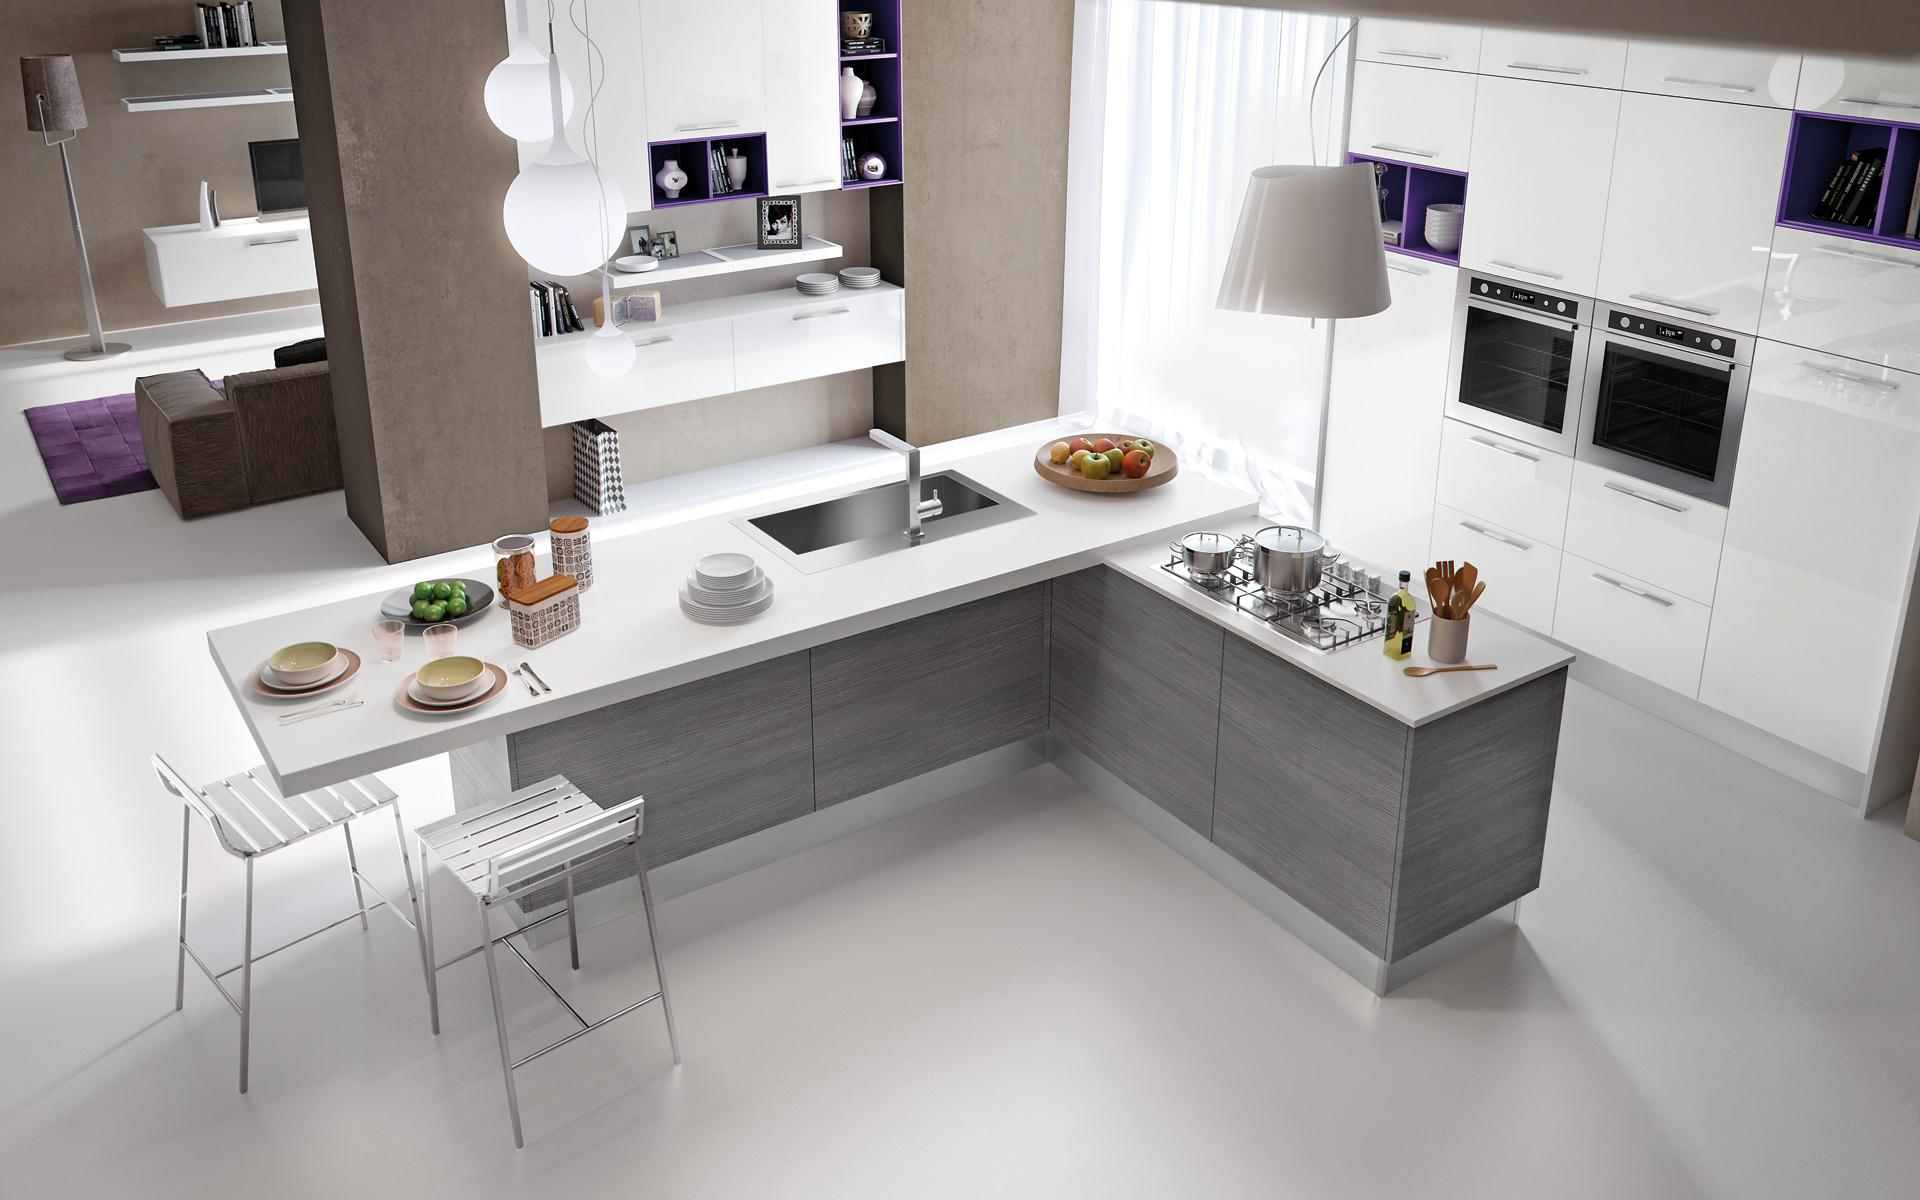 Awesome Cucine E Salone Unico Ambiente Images - Ideas & Design ...